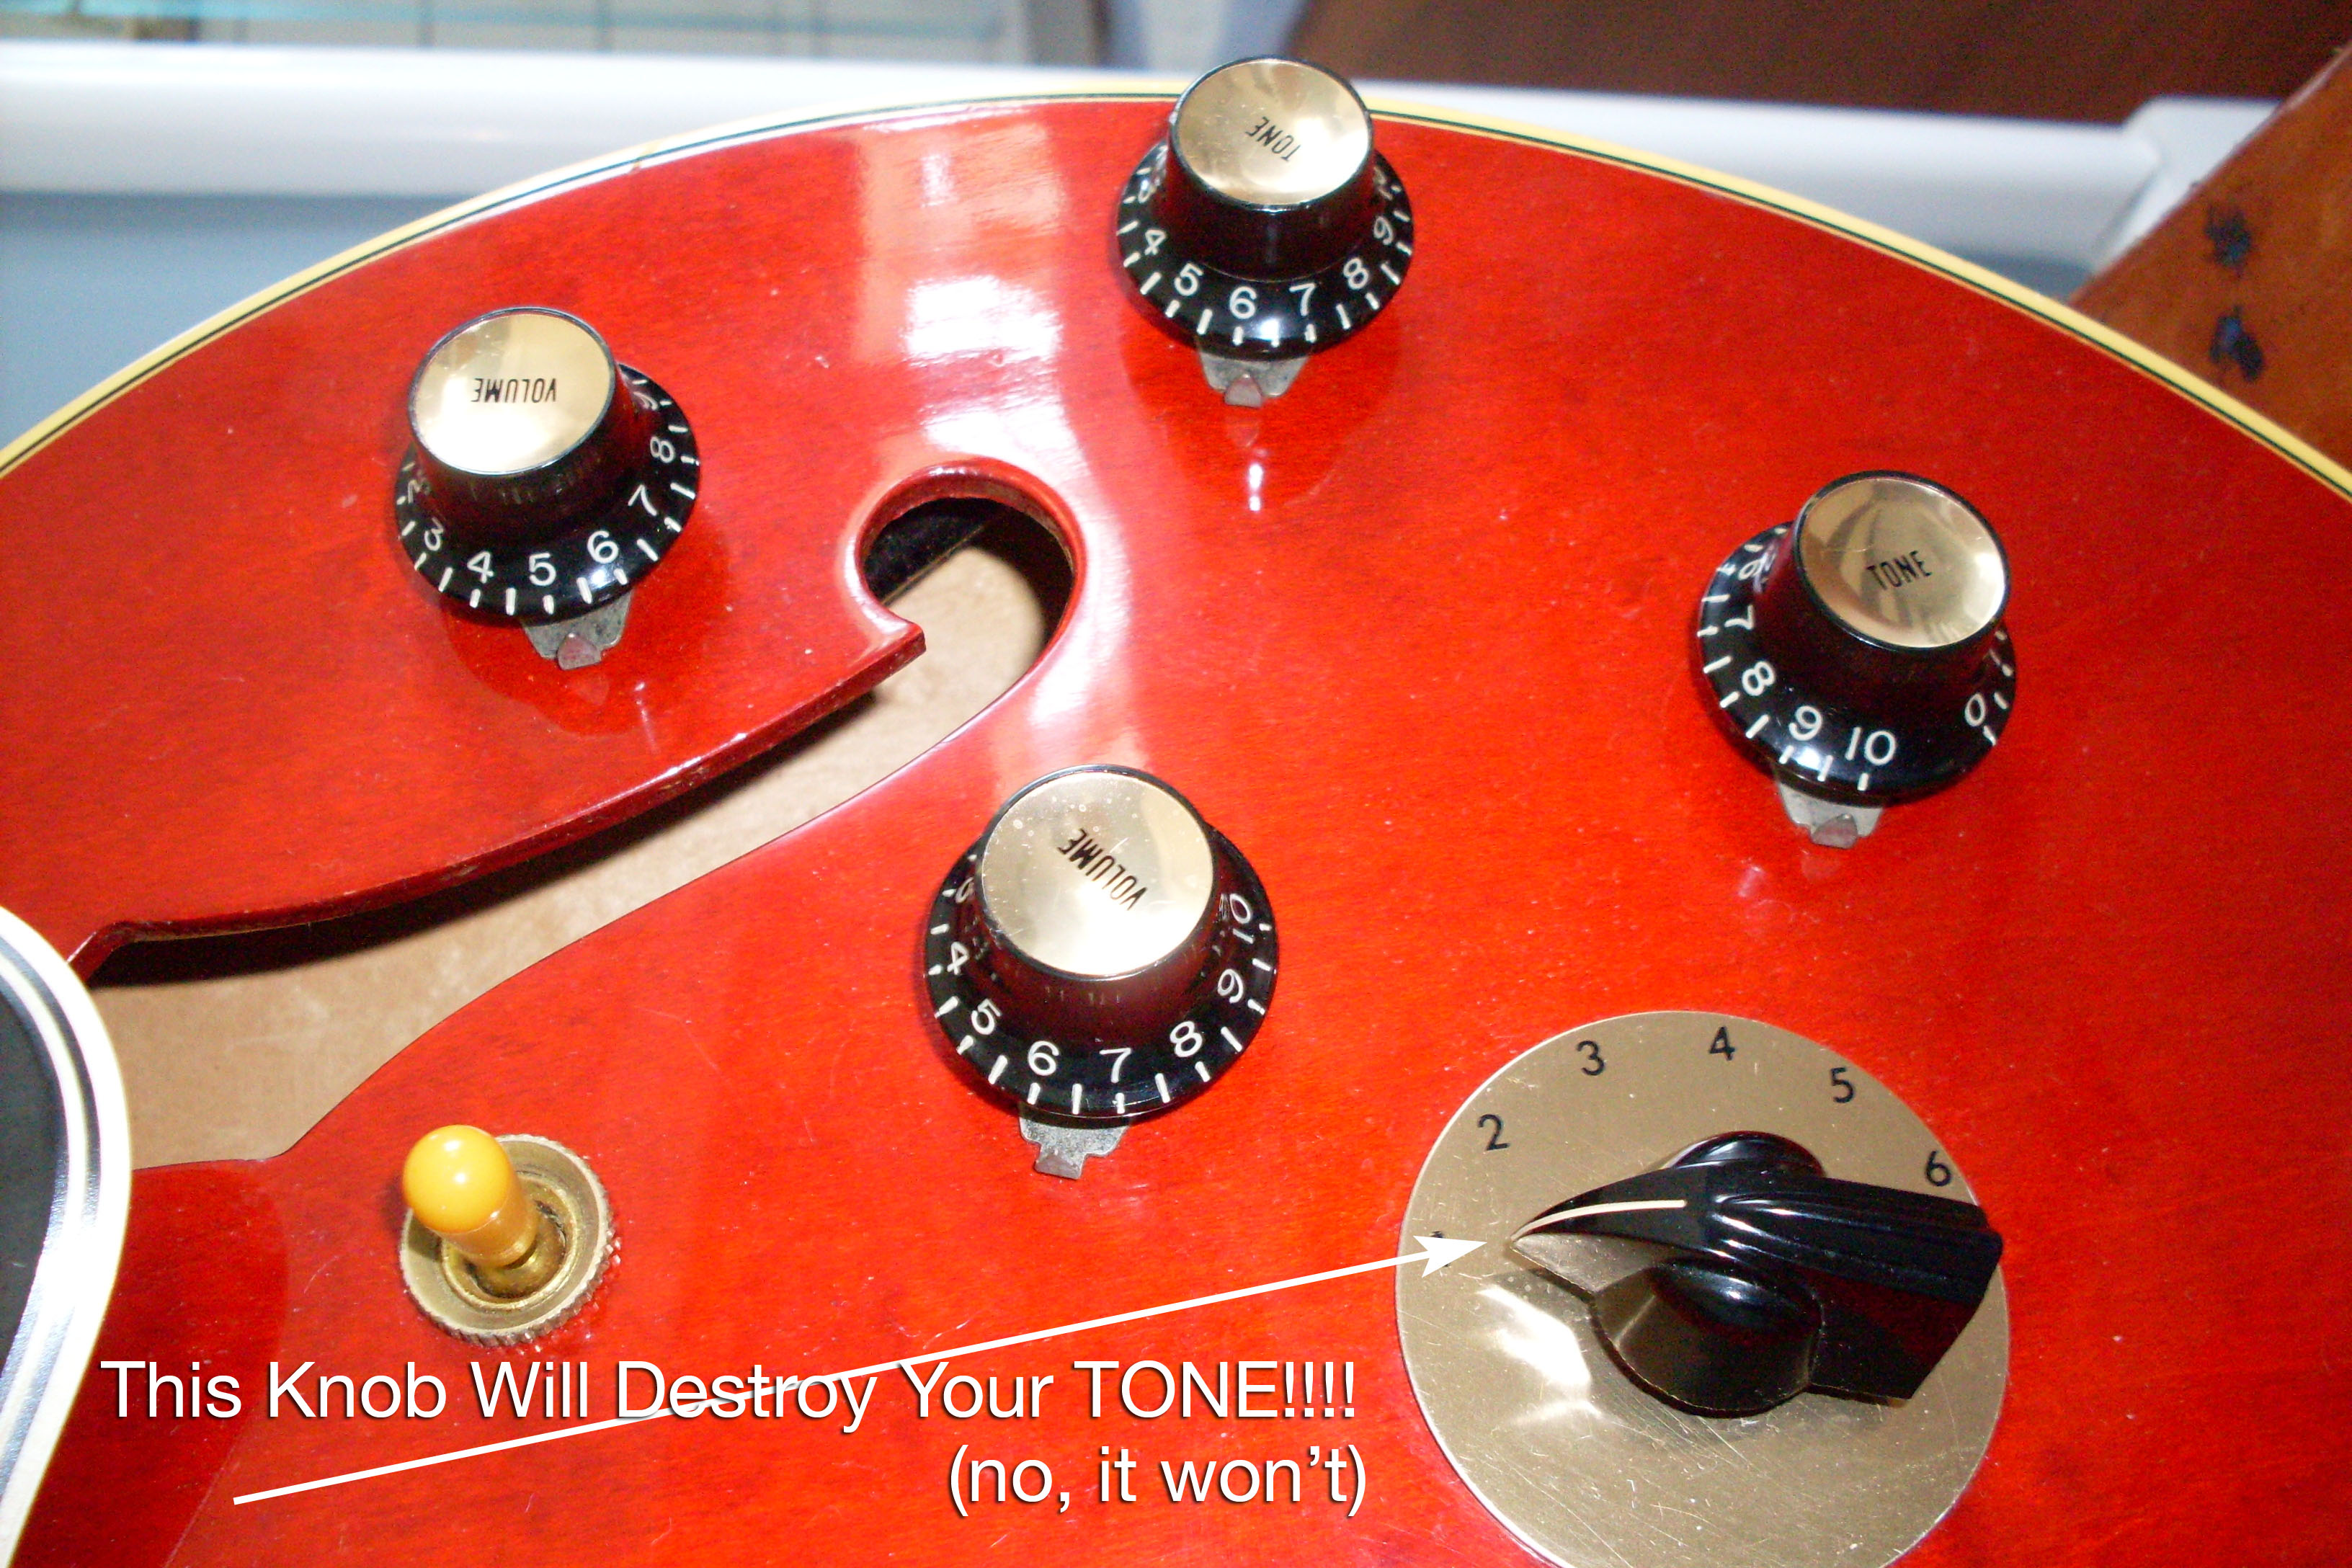 VT copy the gibson es 335 part 39 ES-335 Wiring Diagram for Guitar at panicattacktreatment.co